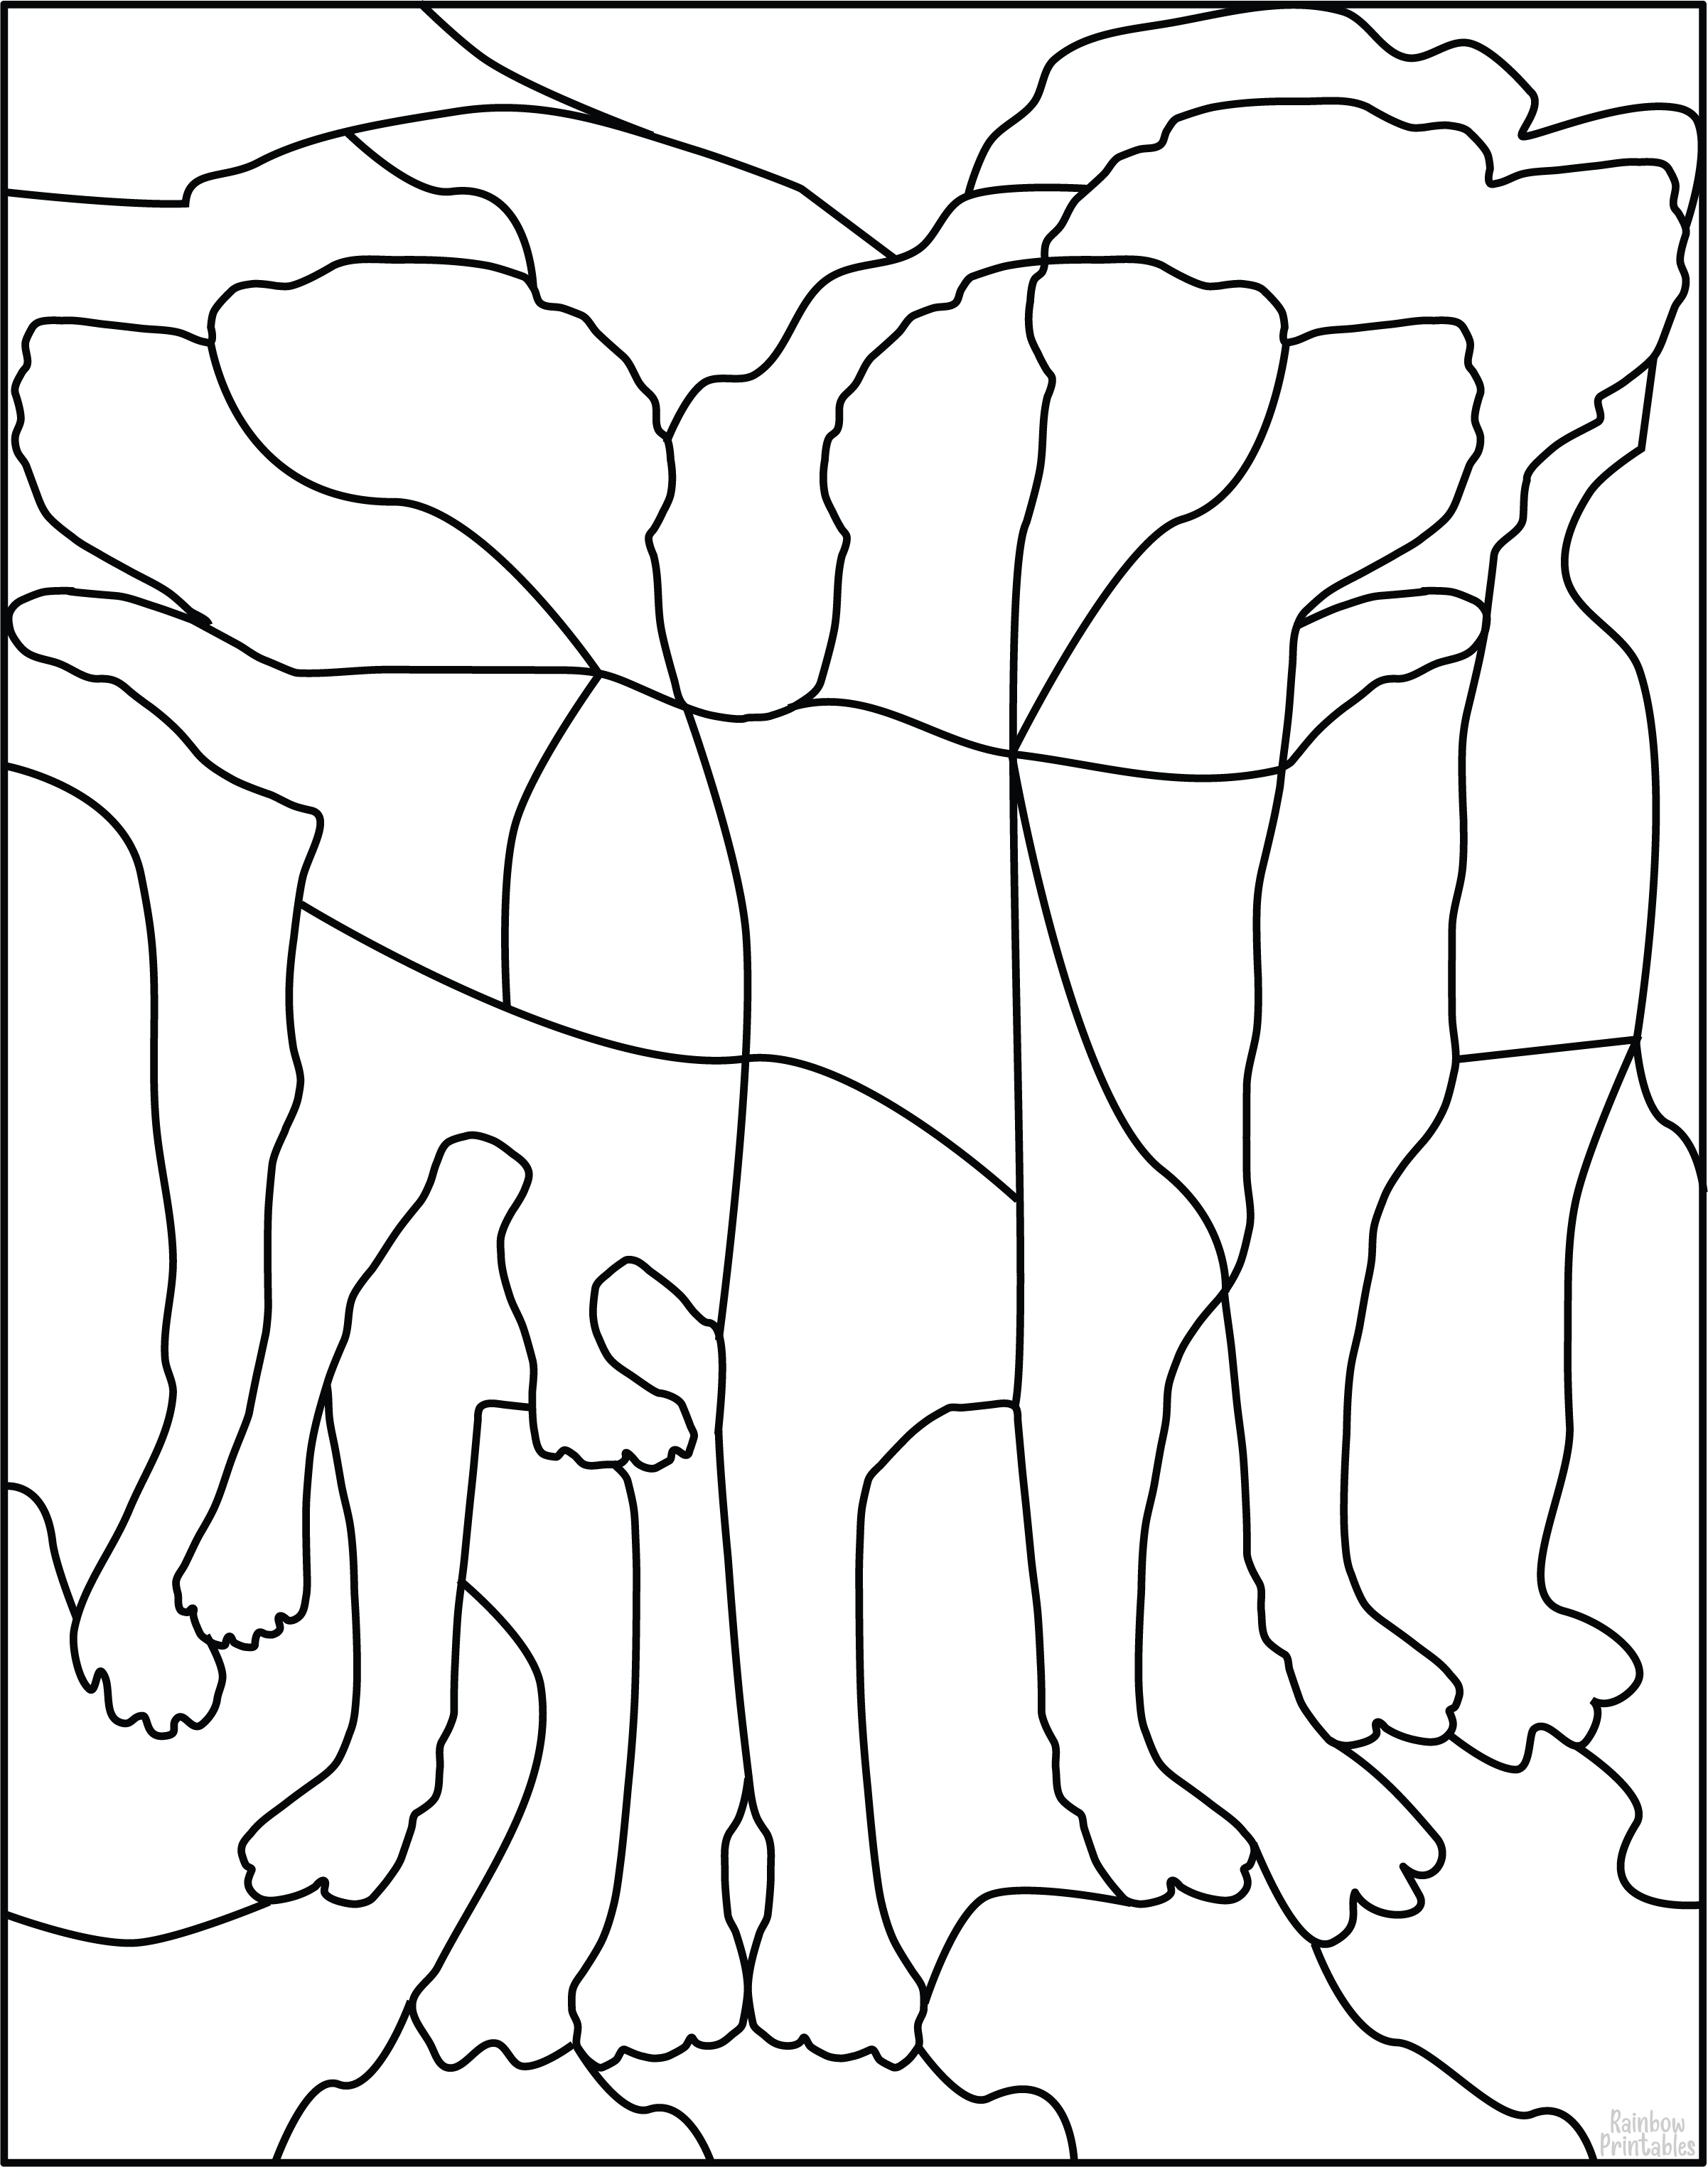 FREE DOG PUZZLE DIY GAME Free Clipart Coloring Pages for Kids Adults Art Activities Line Art